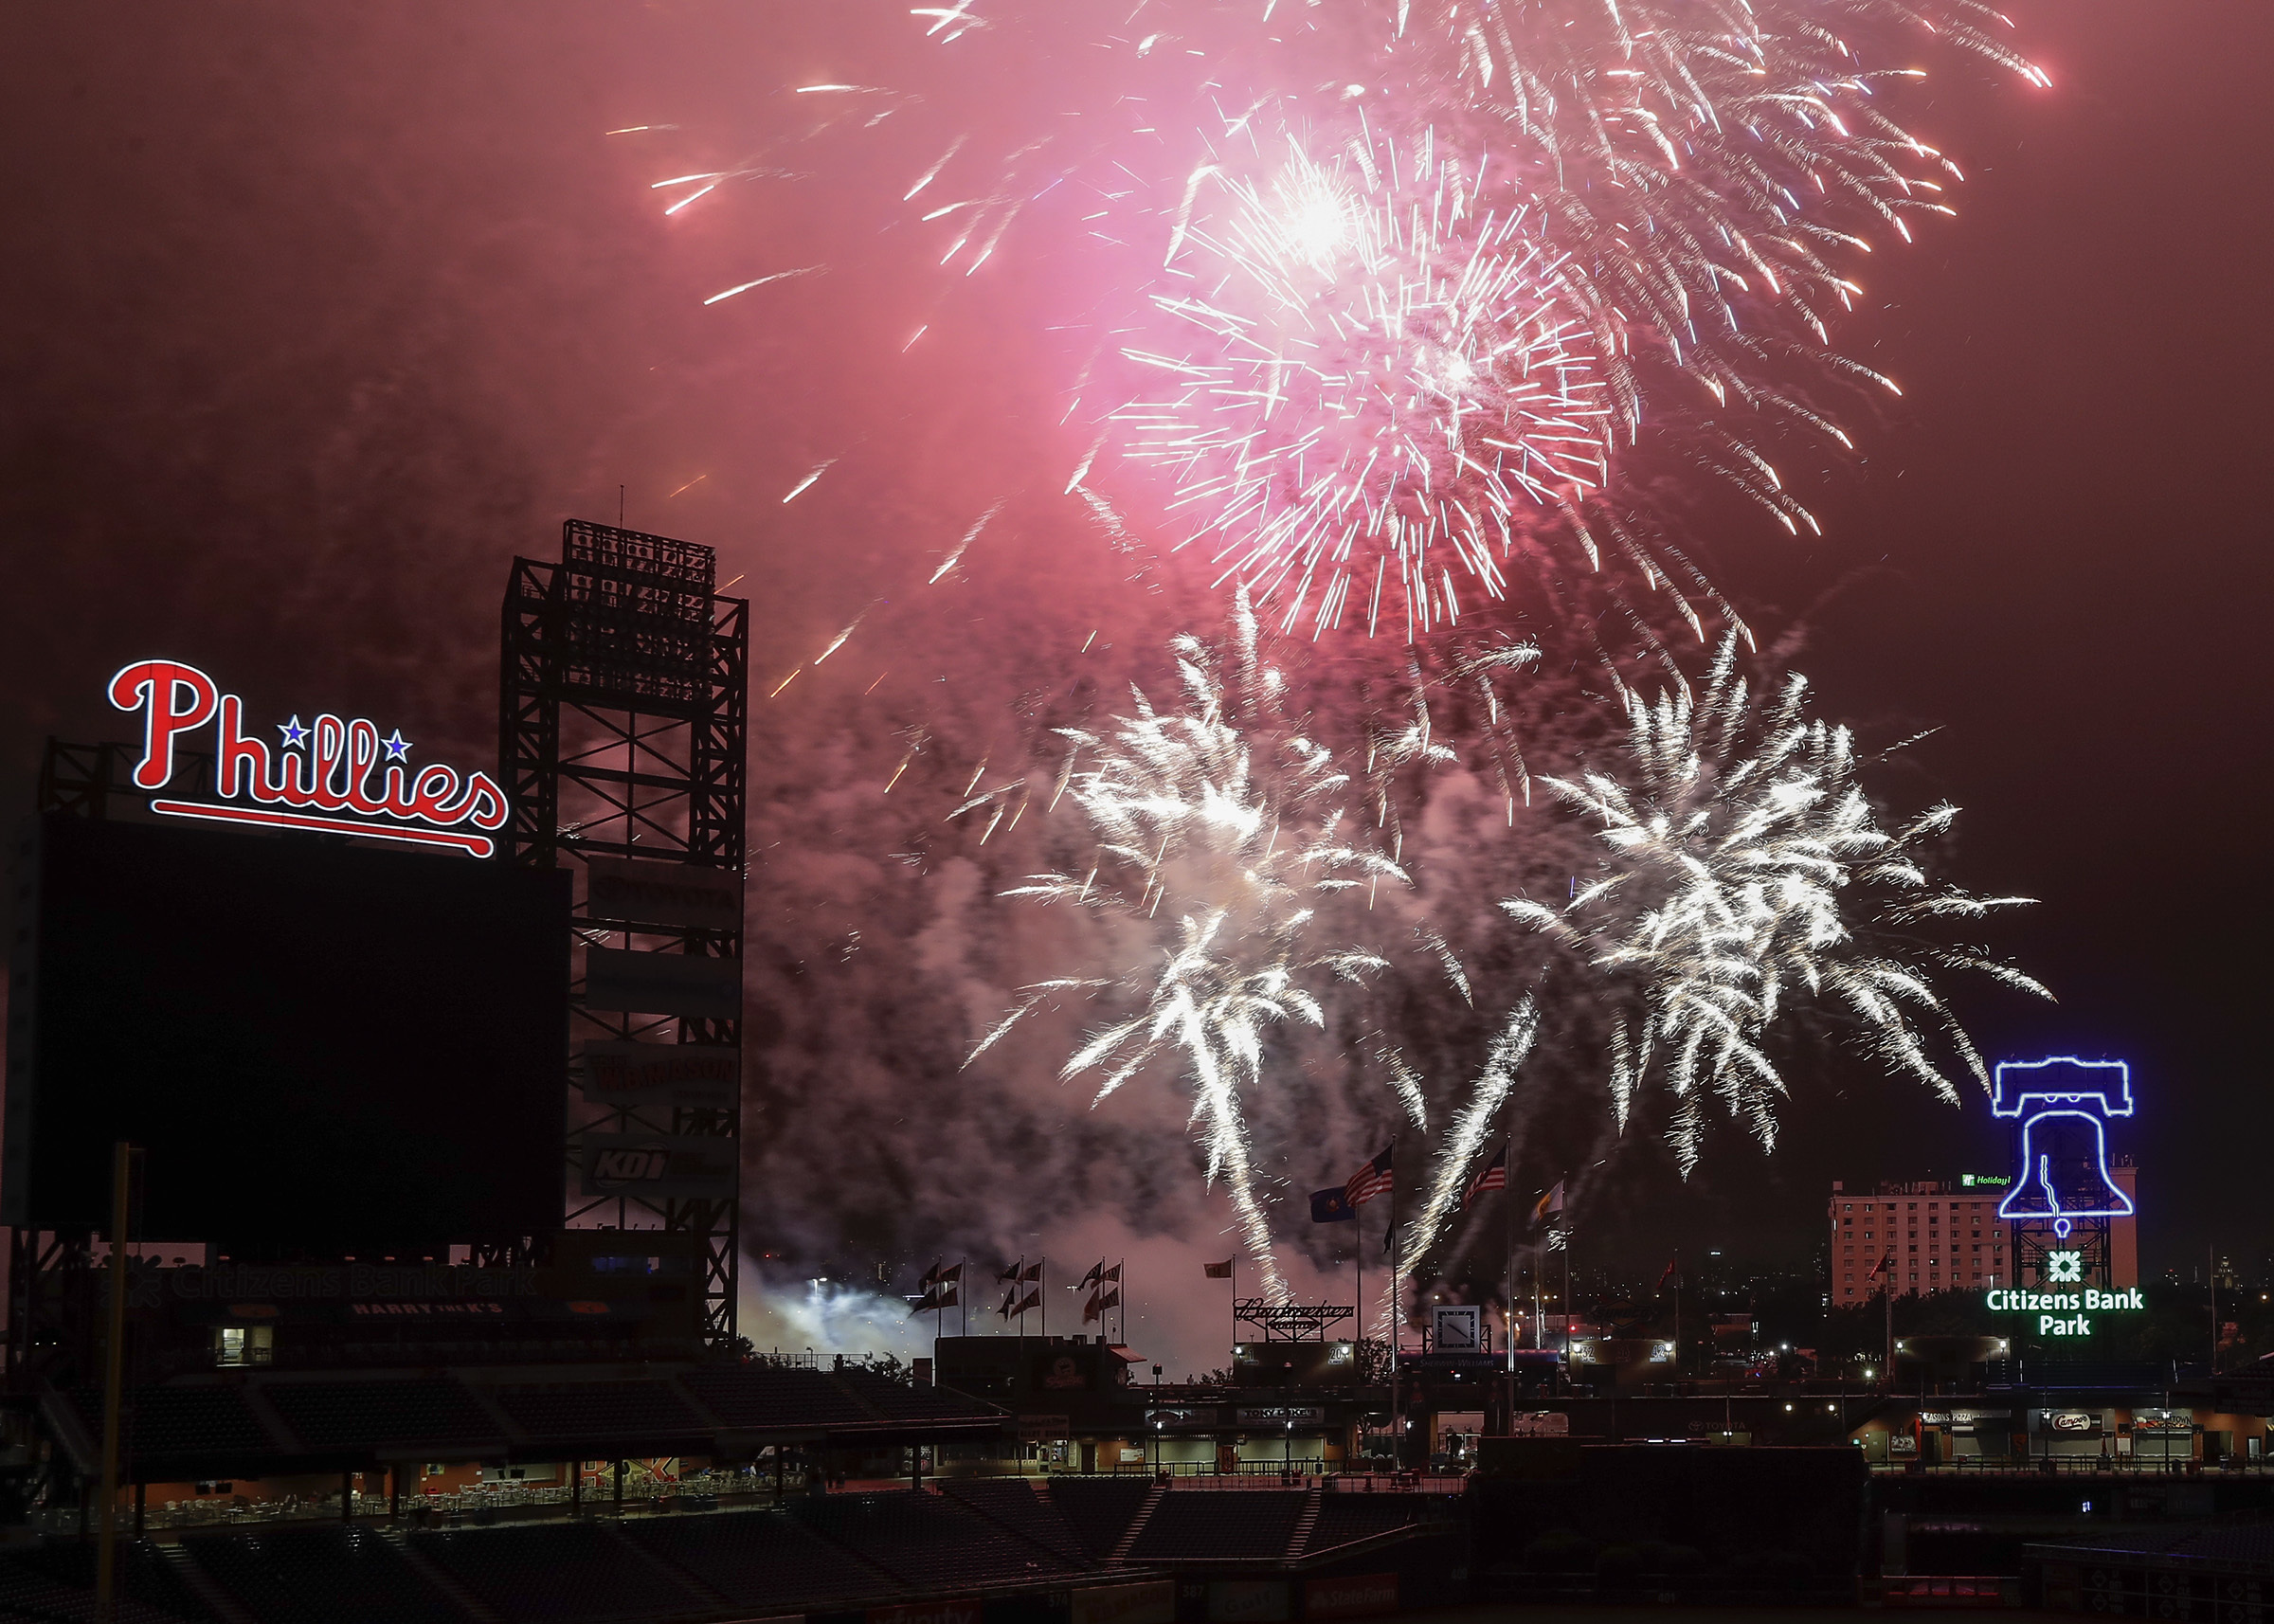 Fireworks fly over Citizens Bank Park after the Phillies played the Pittsburgh Pirates on Thursday, July 6, 2017 in Philadelphia. New Castles Pyrotecnico produces the show. YONG KIM / Staff Photographer.